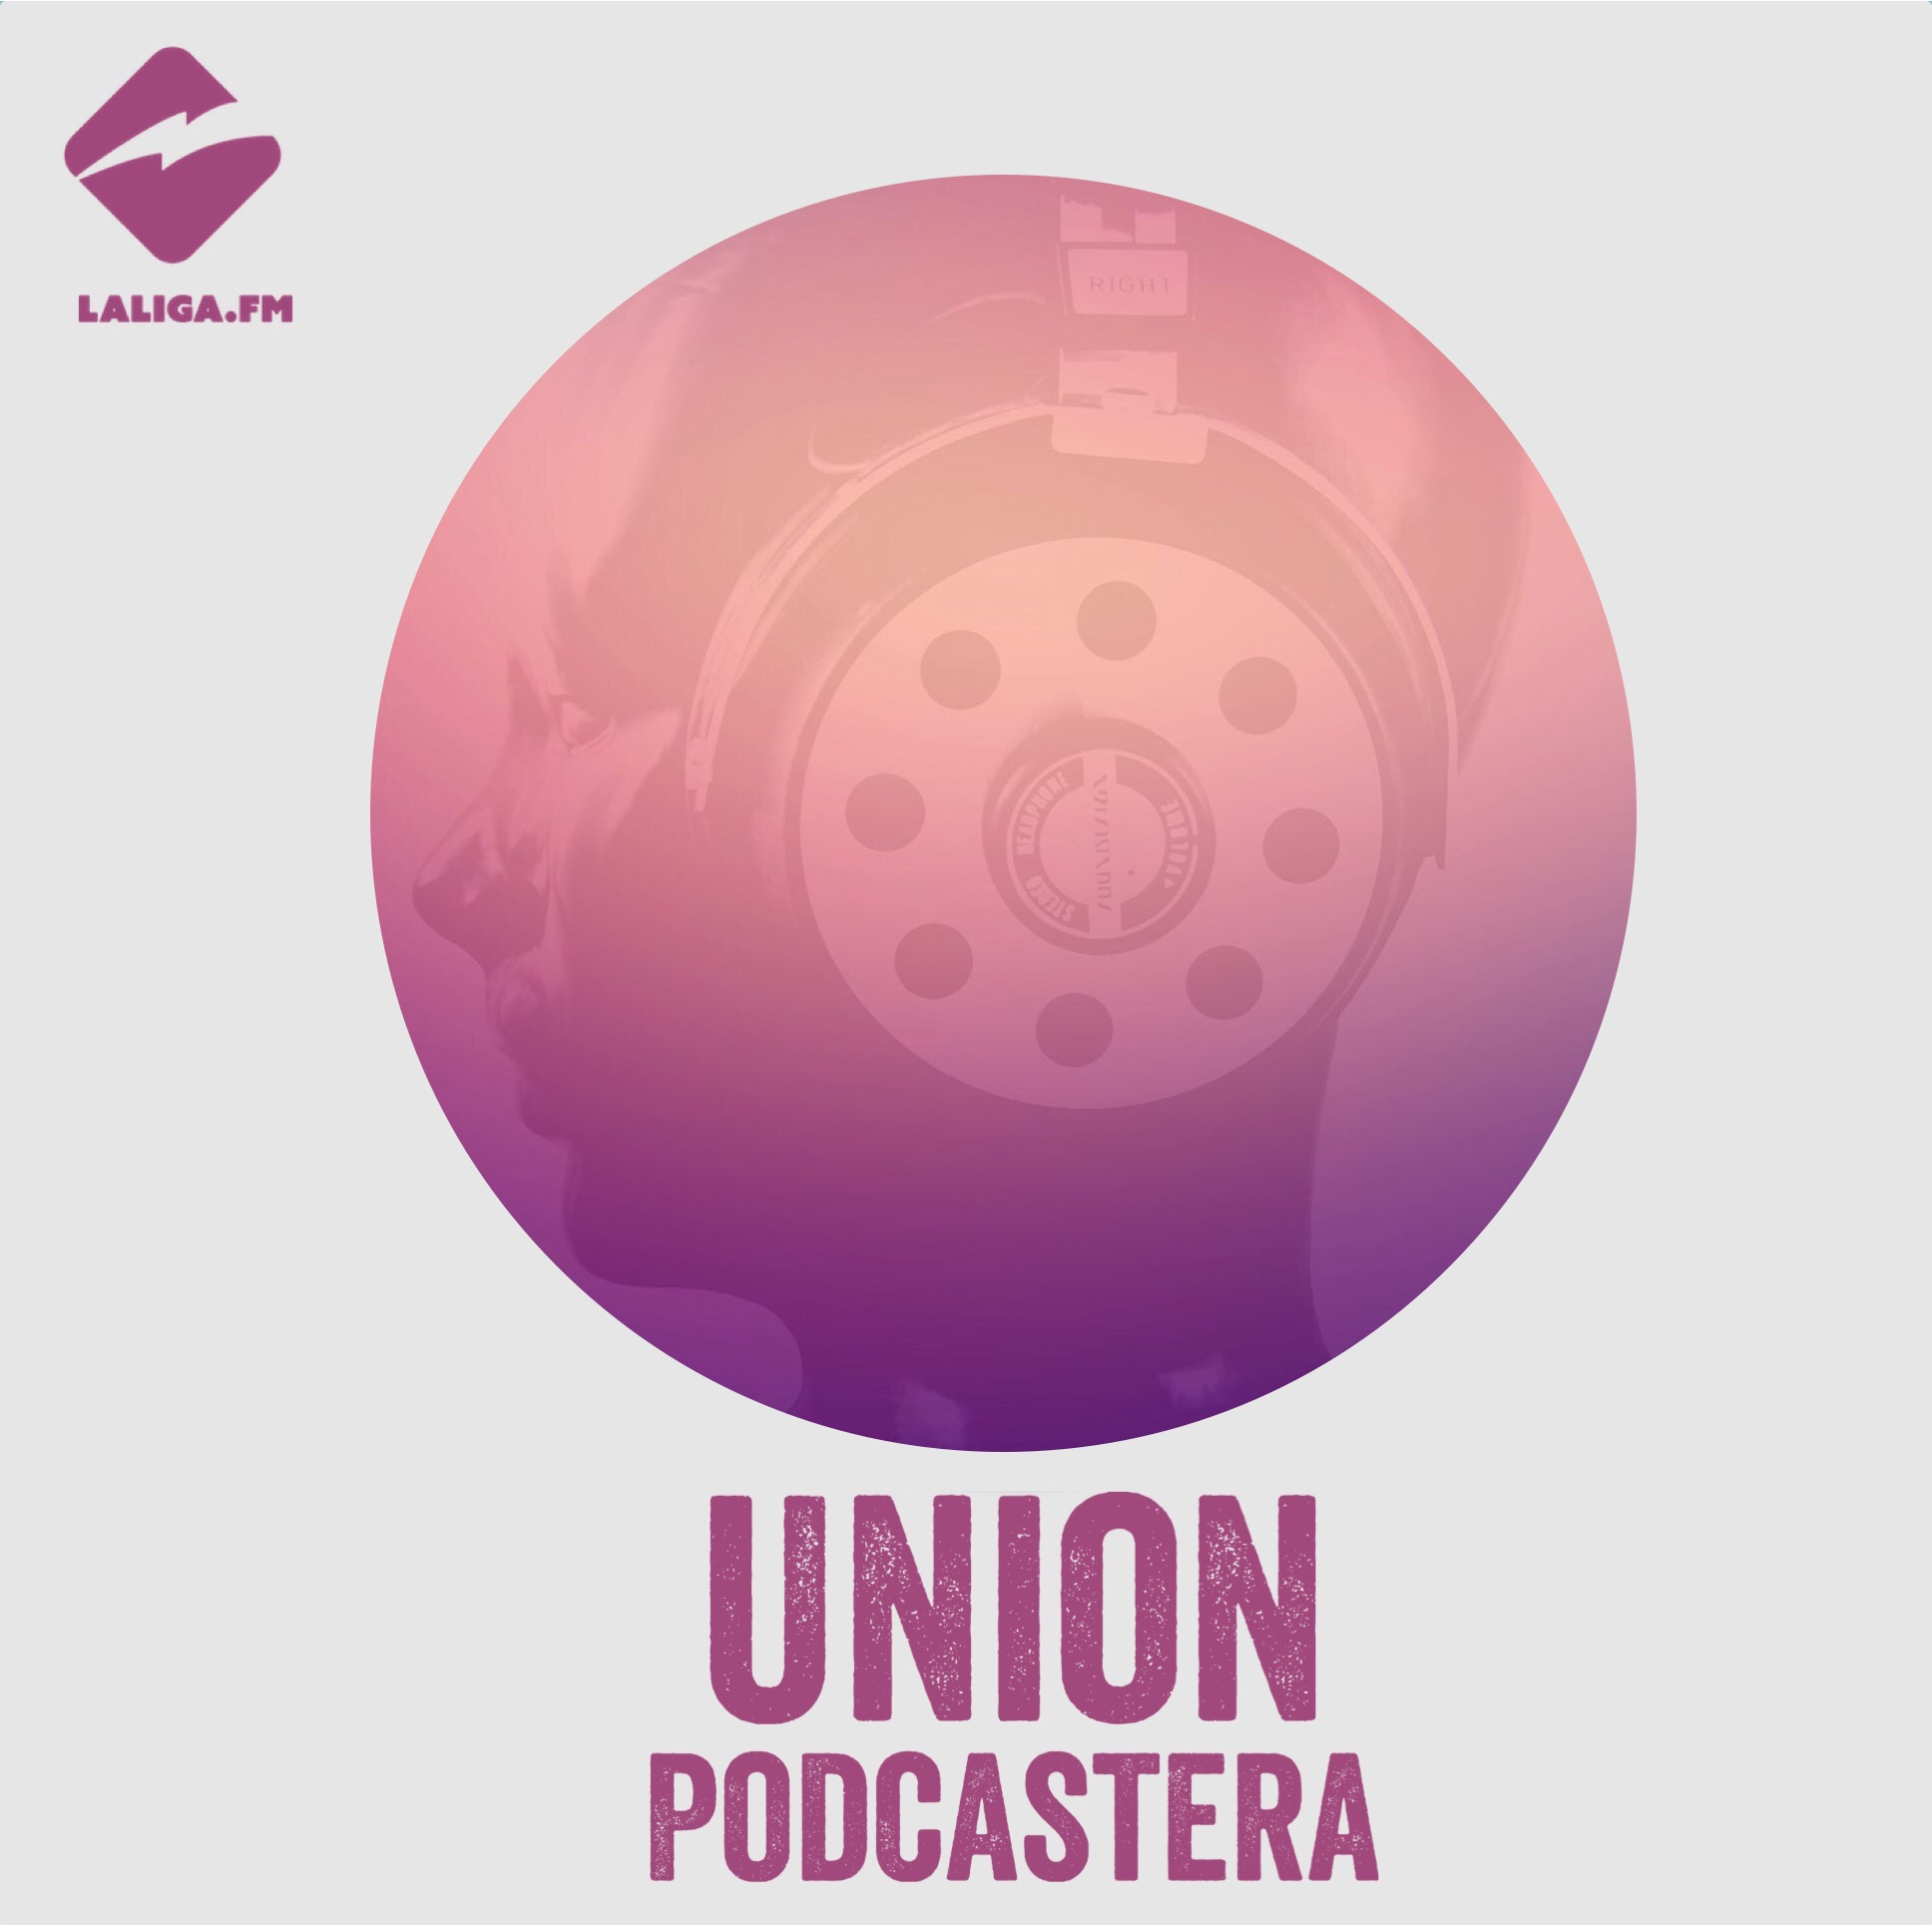 Unión Podcastera